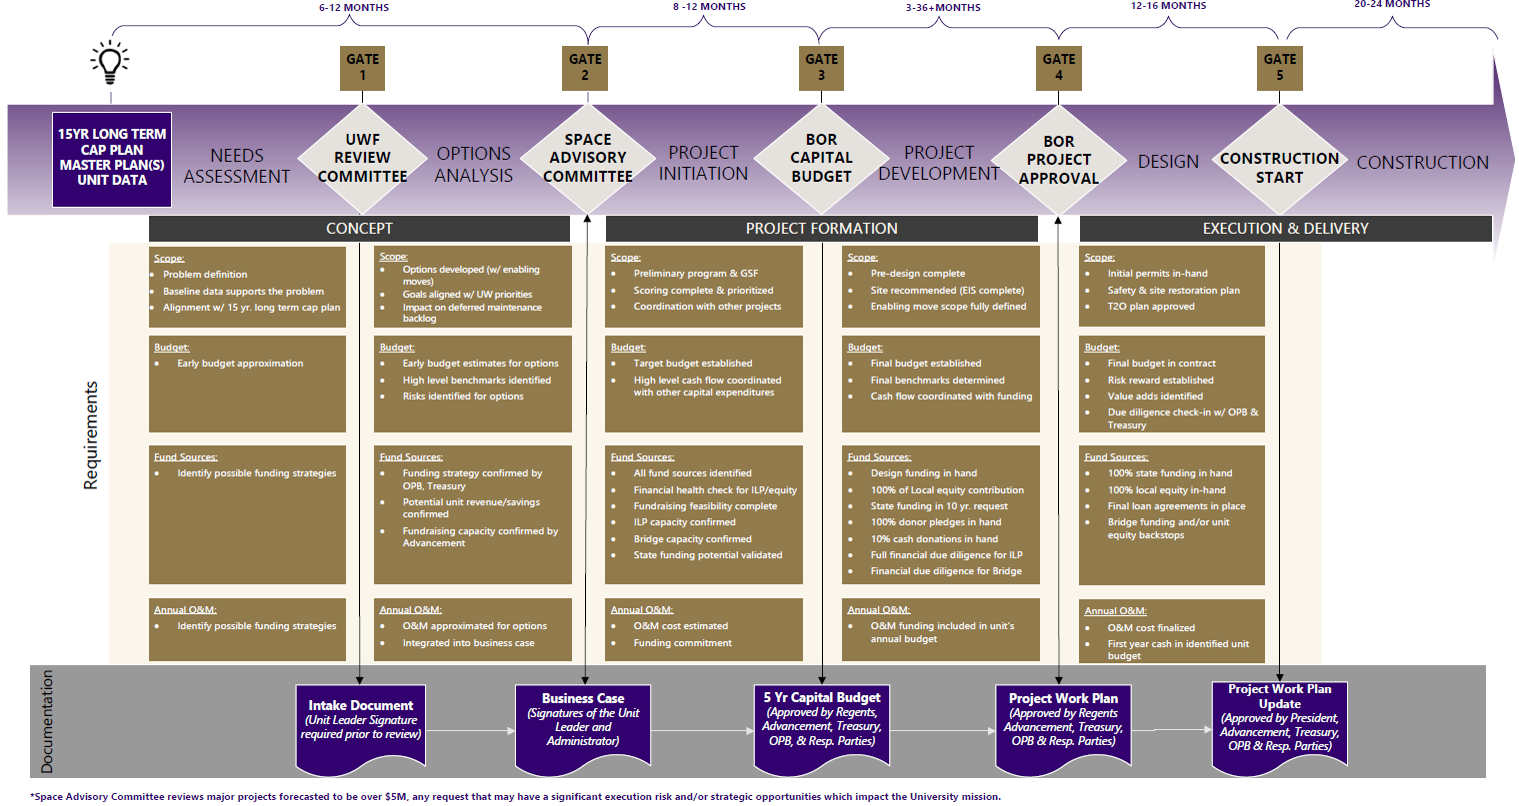 Diagram of capital budget planning process